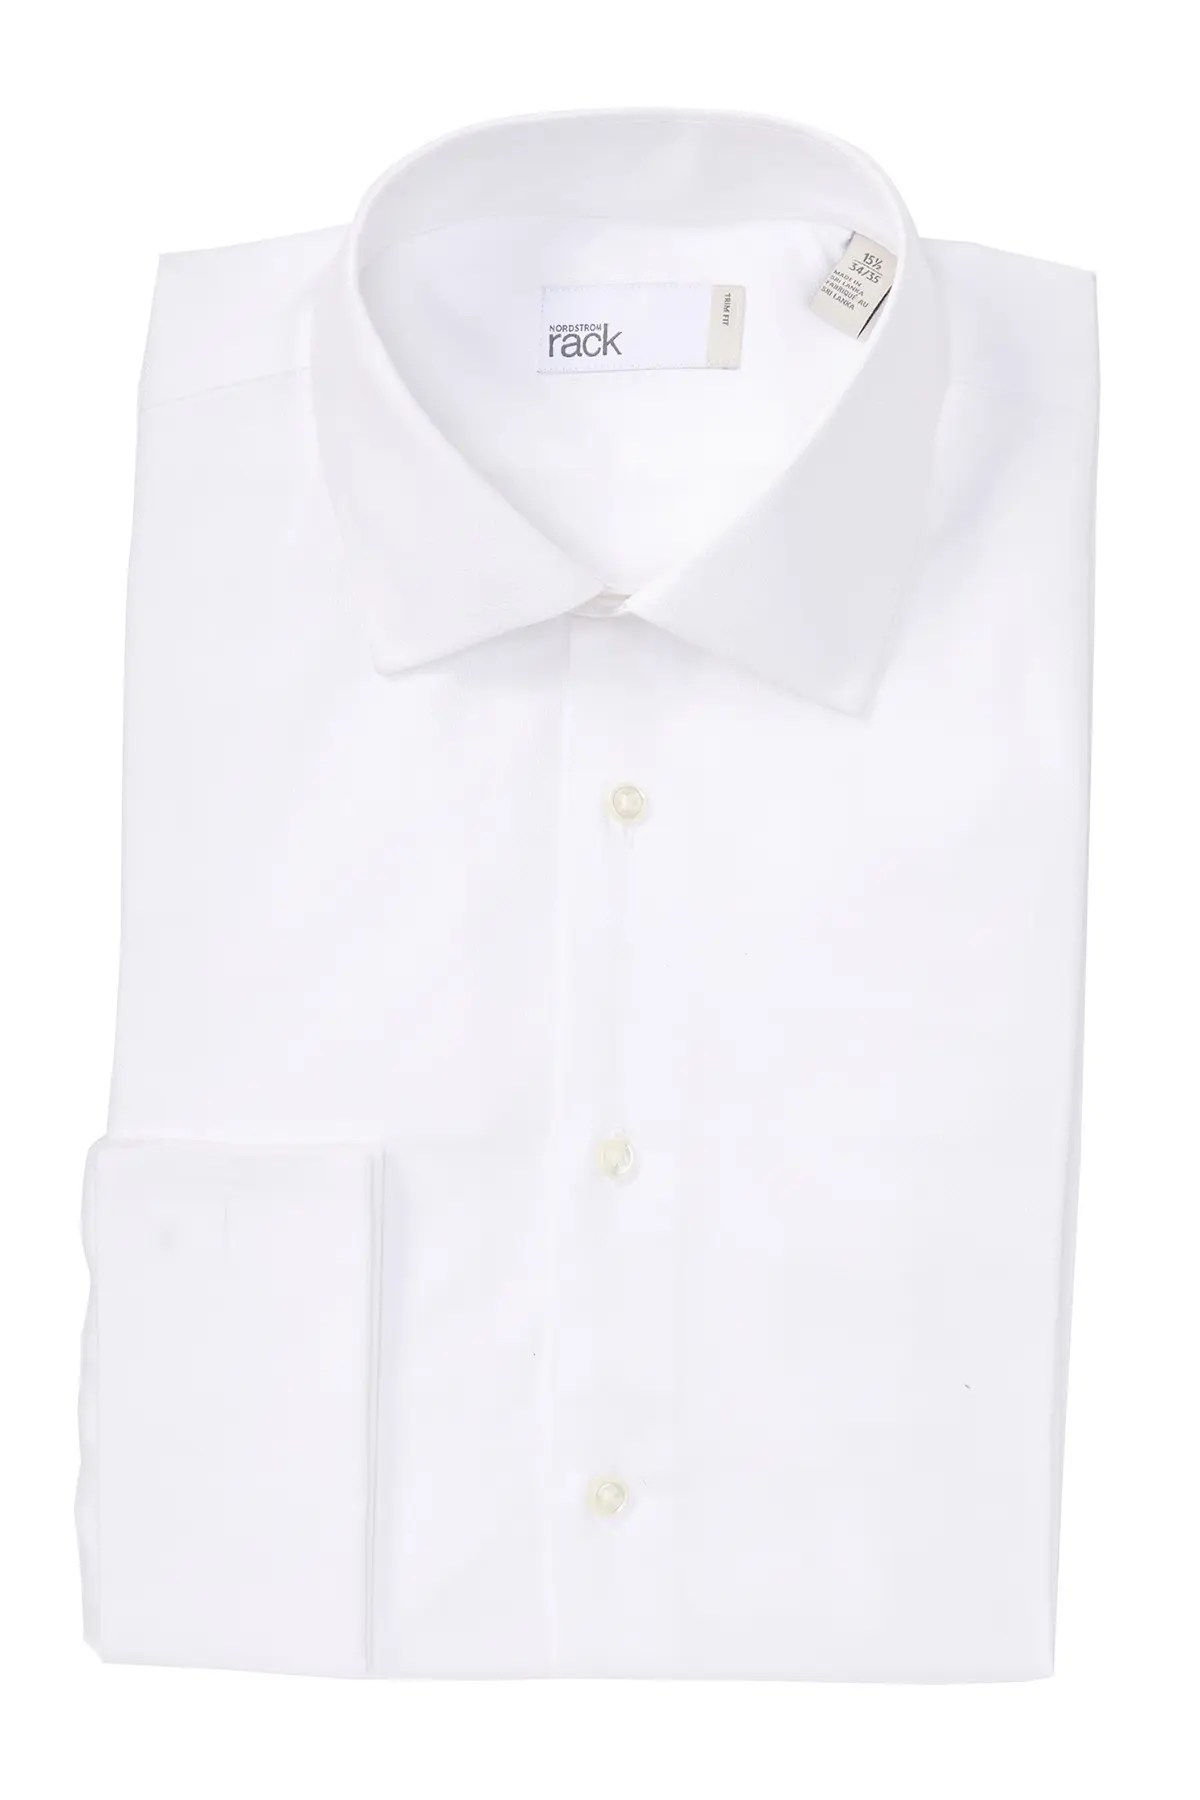 nordstrom rack solid french cuff trim fit dress shirt nordstrom rack